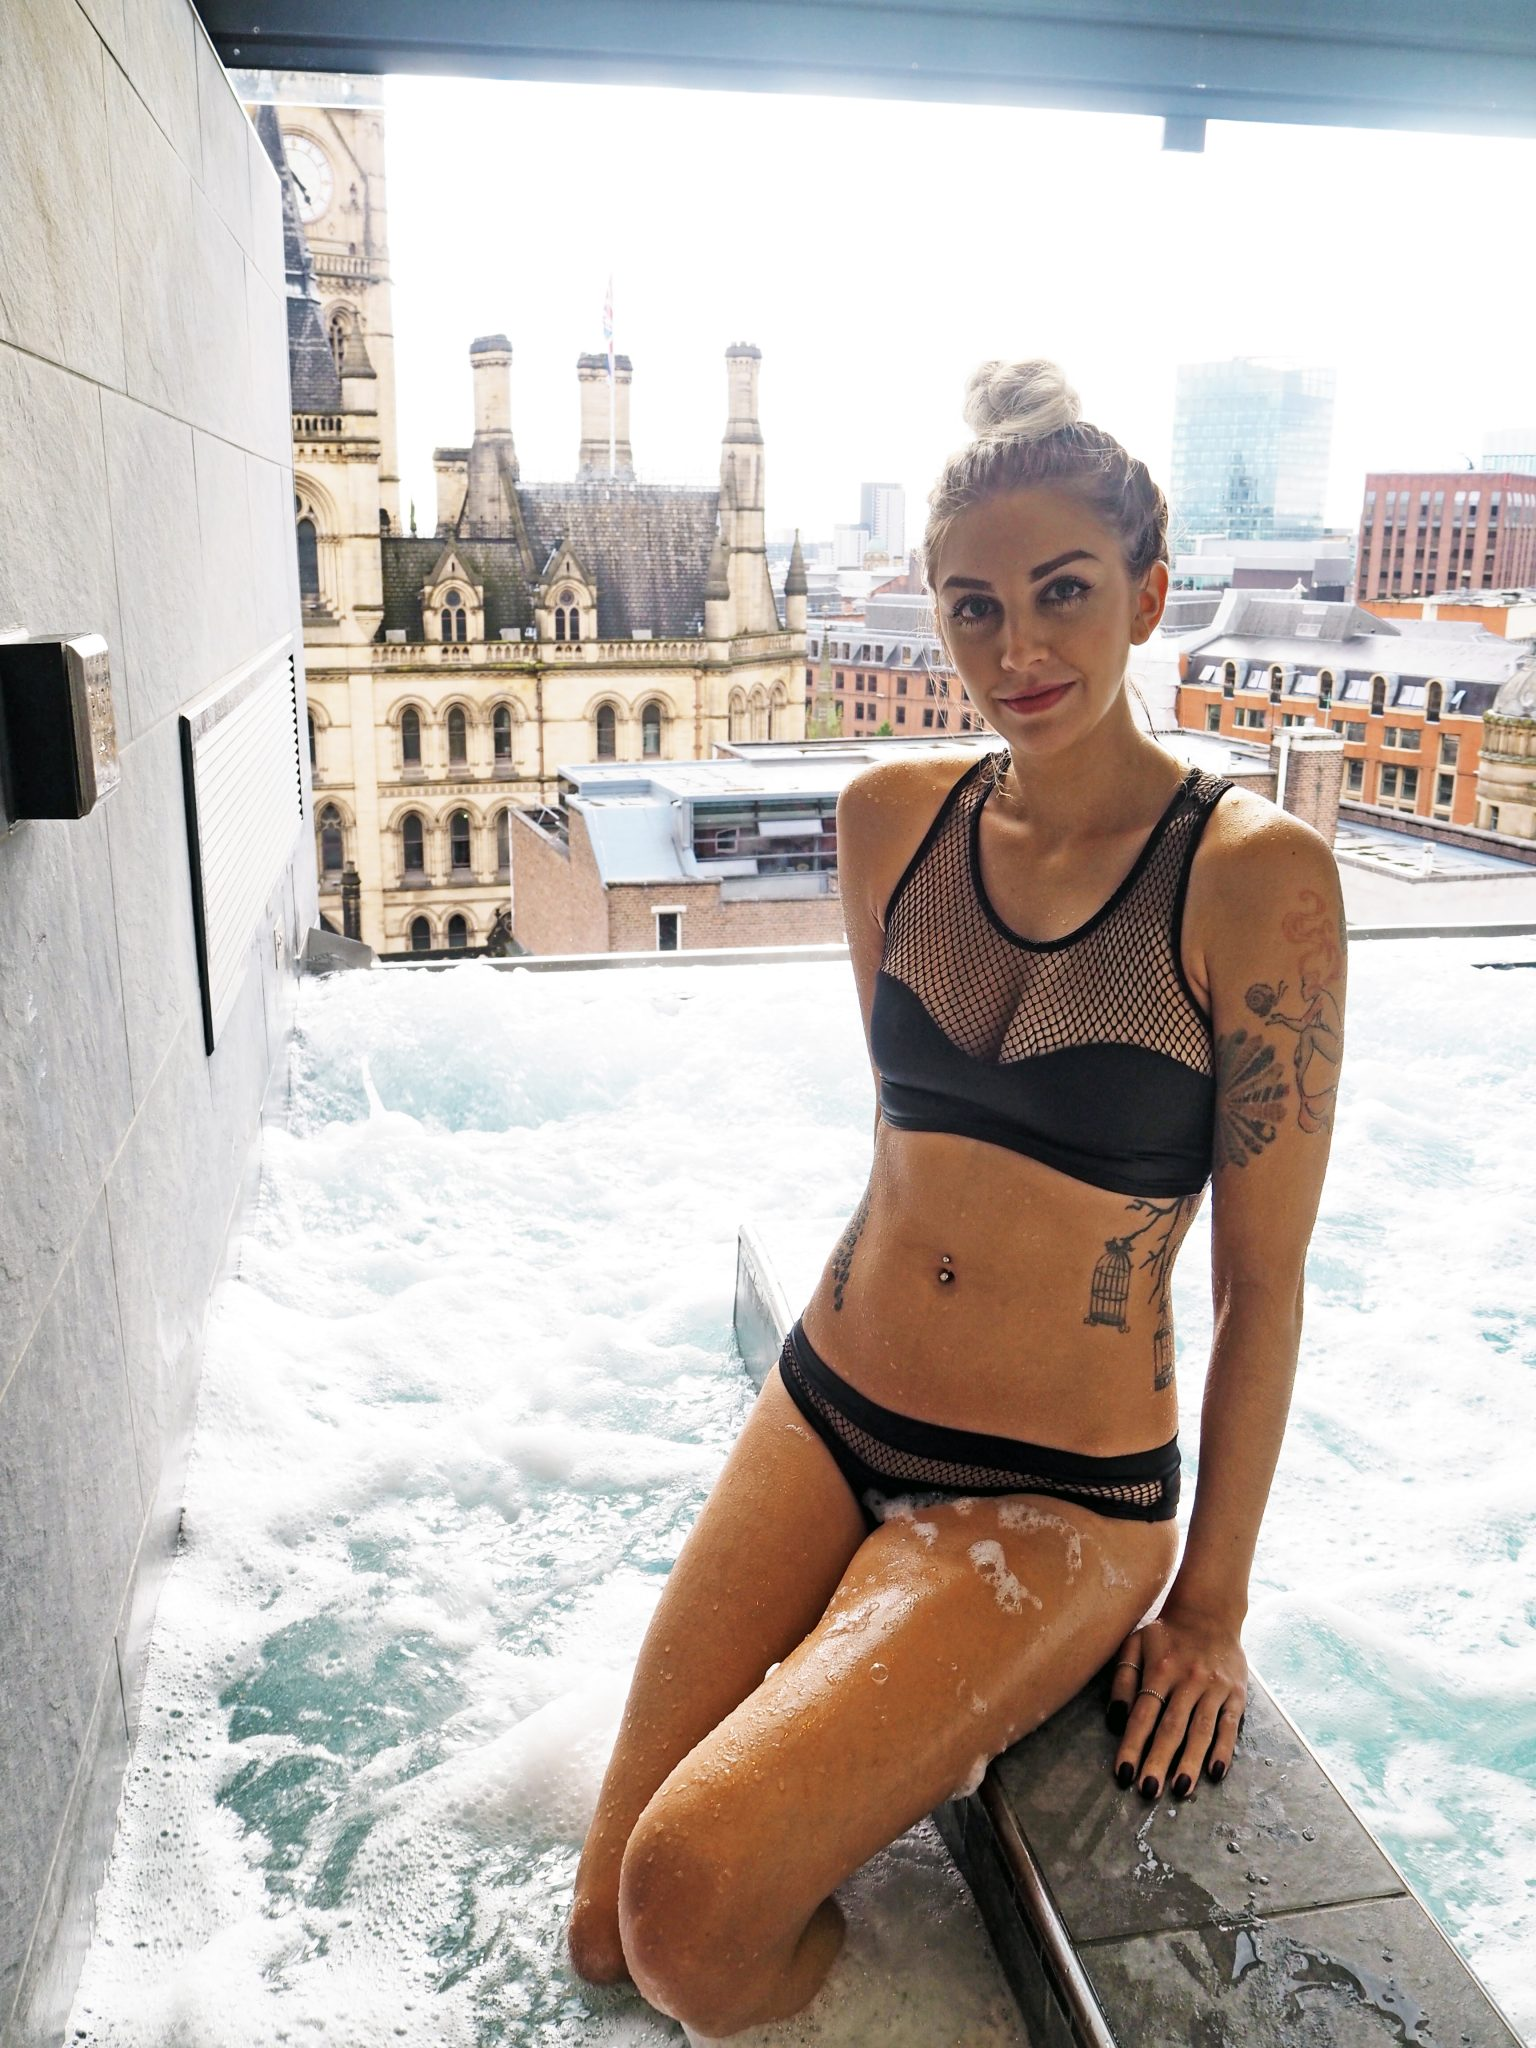 Laura Kate Lucas - Manchester Fashion, Fitness and Lifestyle Blogger | Bouji Lingerie Swimwear and Underwear Review and Giveaway